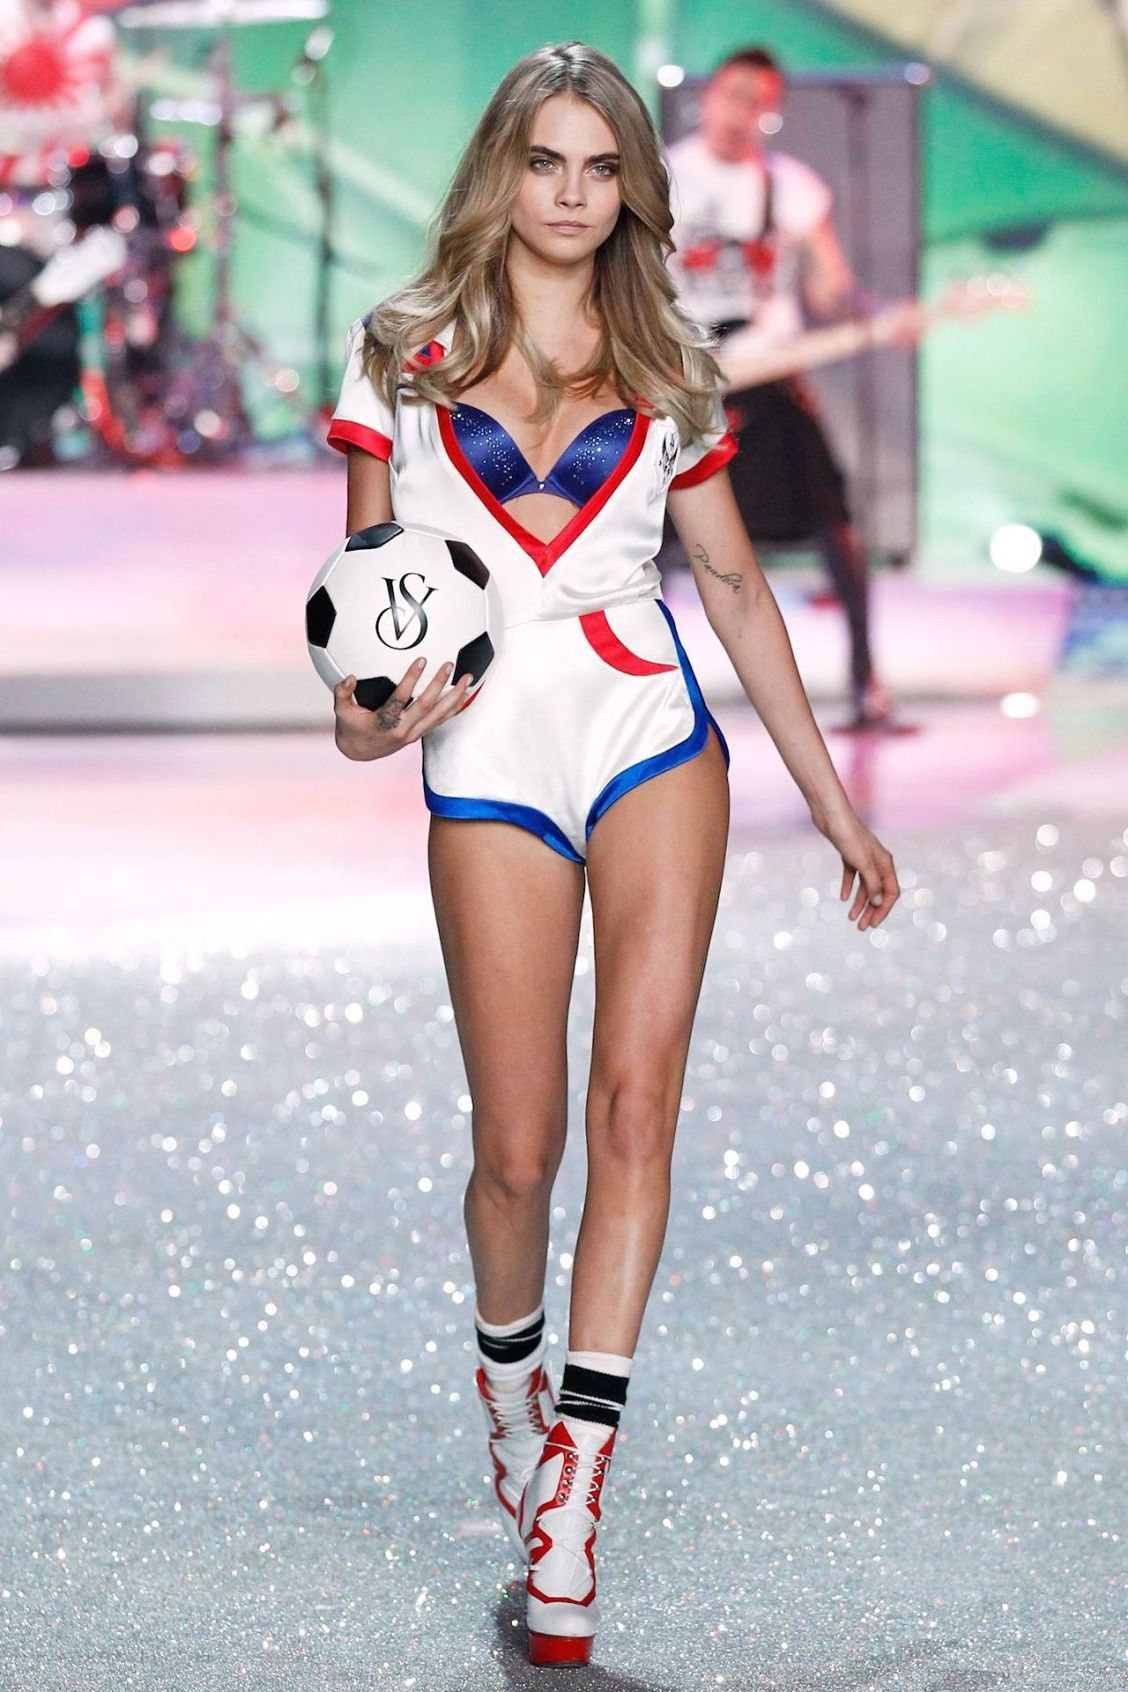 b008a71d16 Cara Delevingne and Victoria s Secret hit back at body shaming tabloid  gossip.